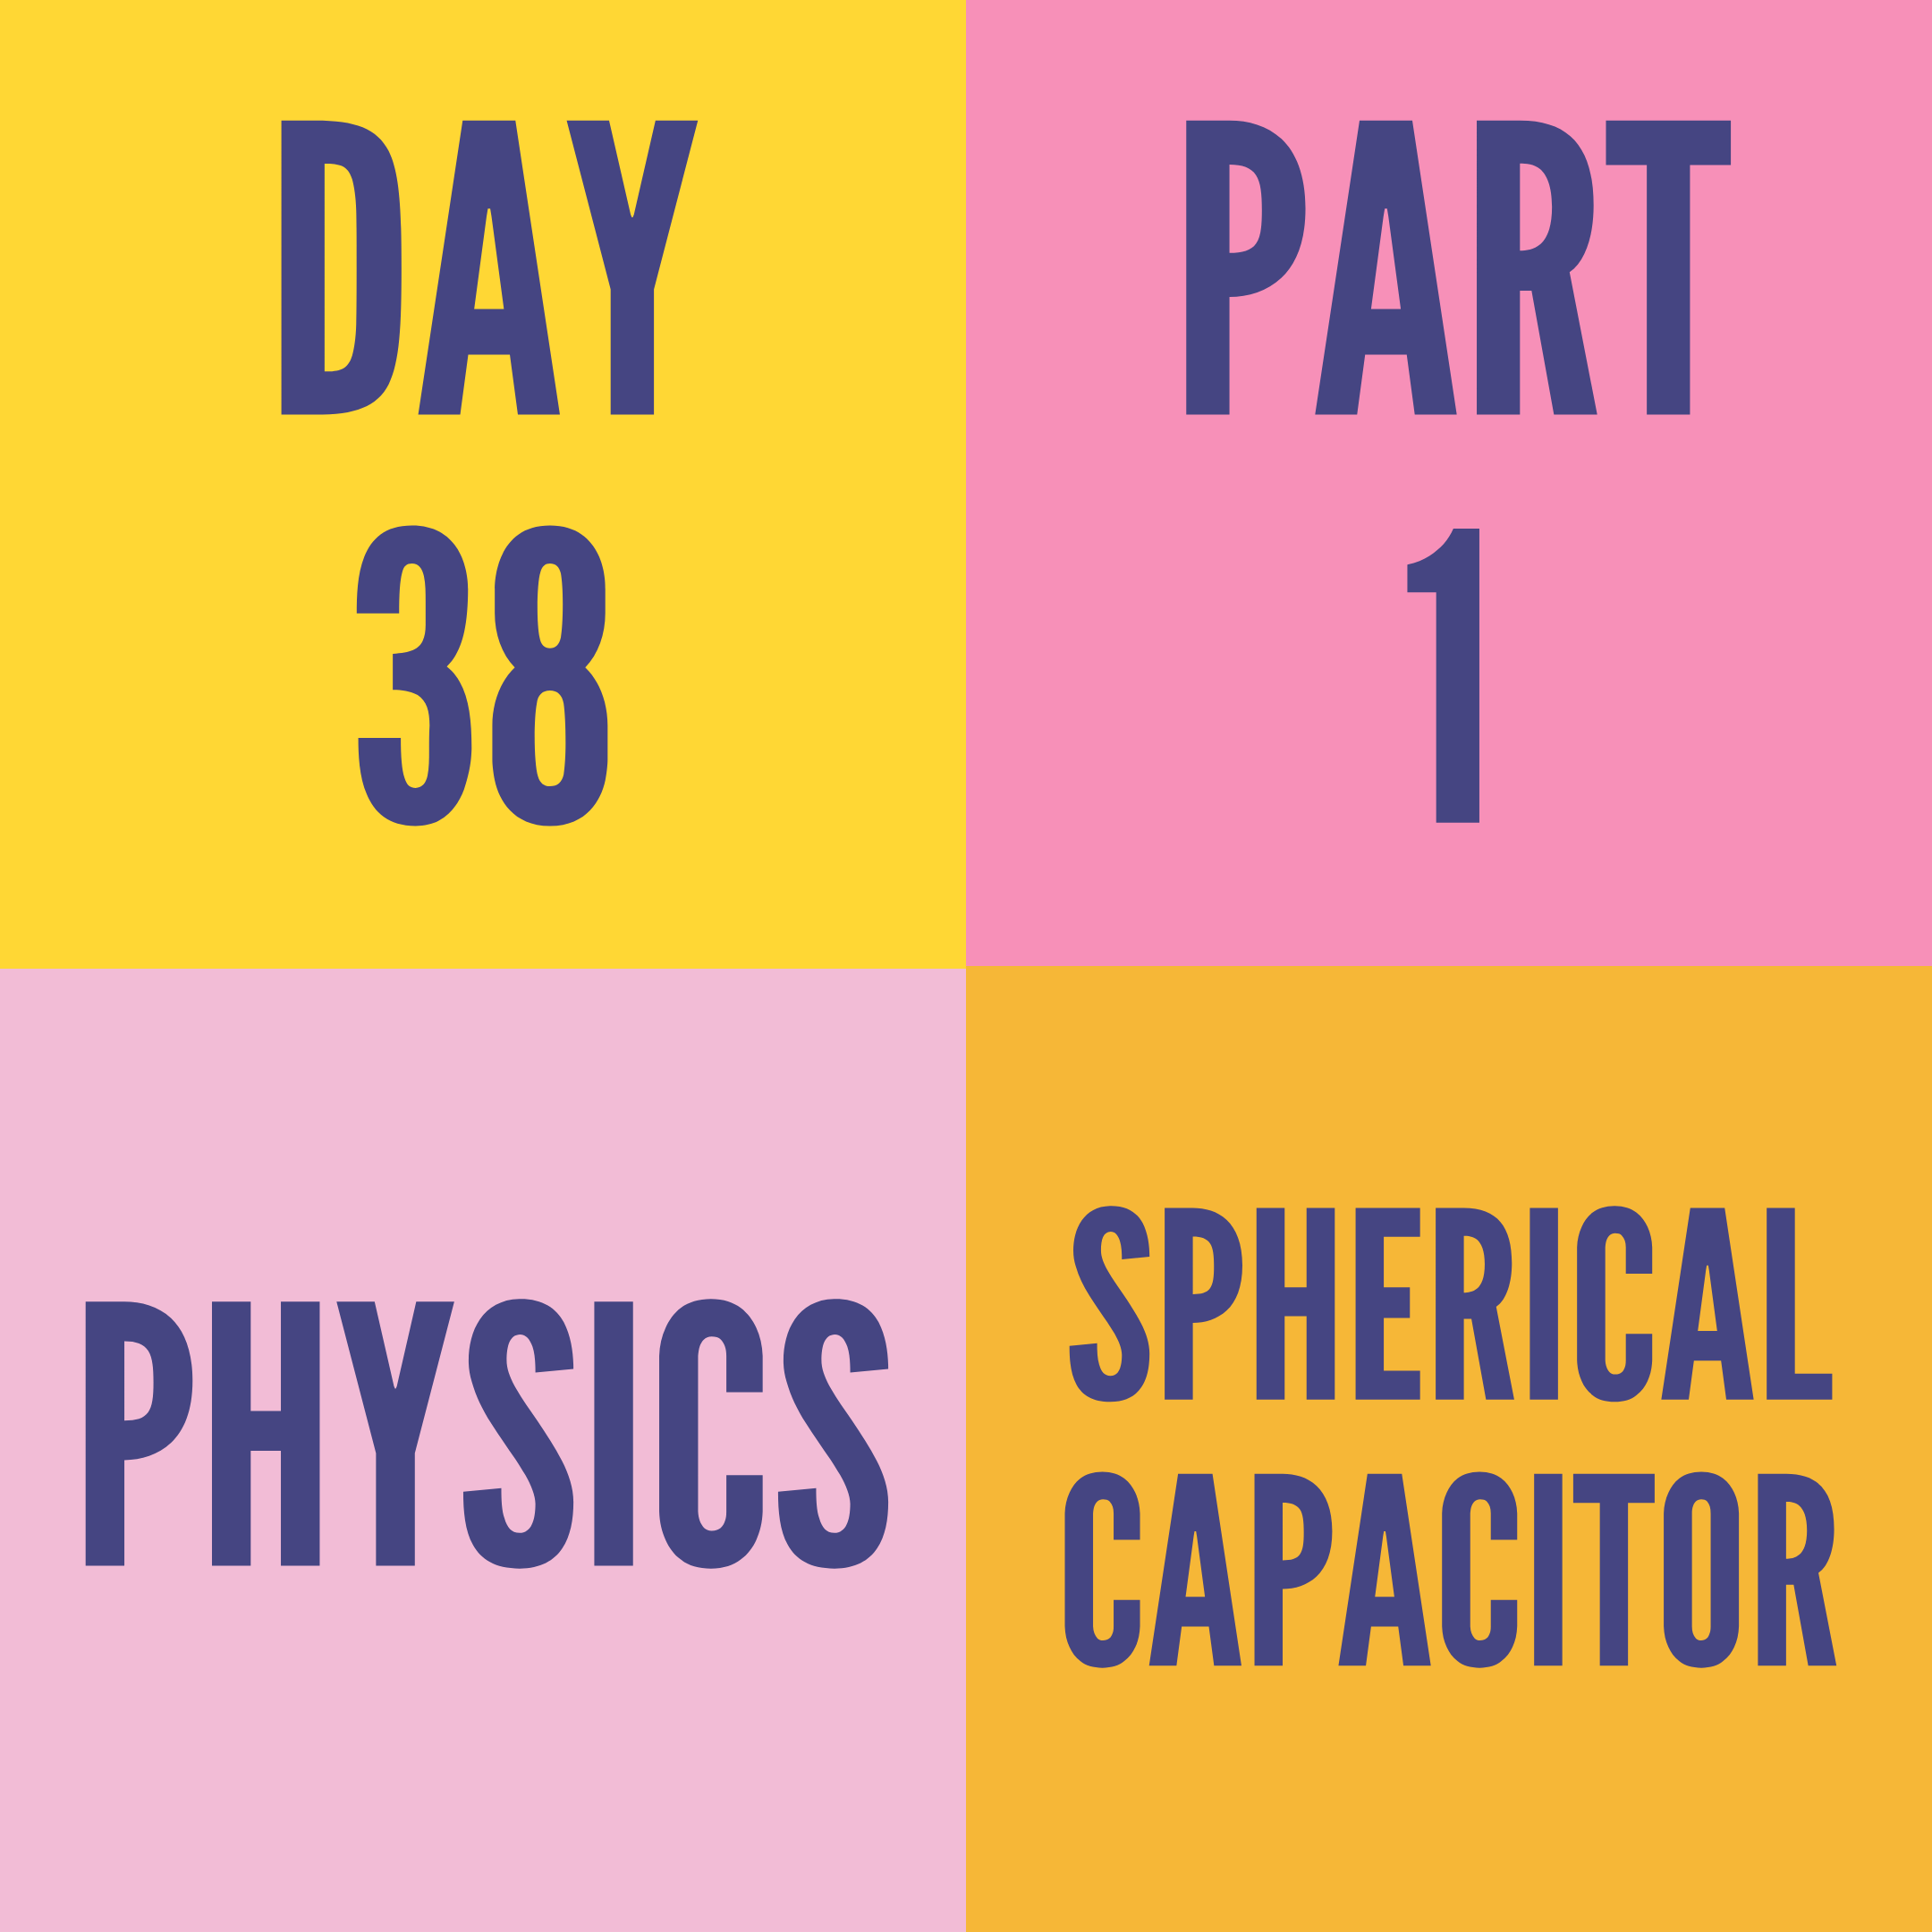 DAY-38 PART-1  SPHERICAL CAPACITOR